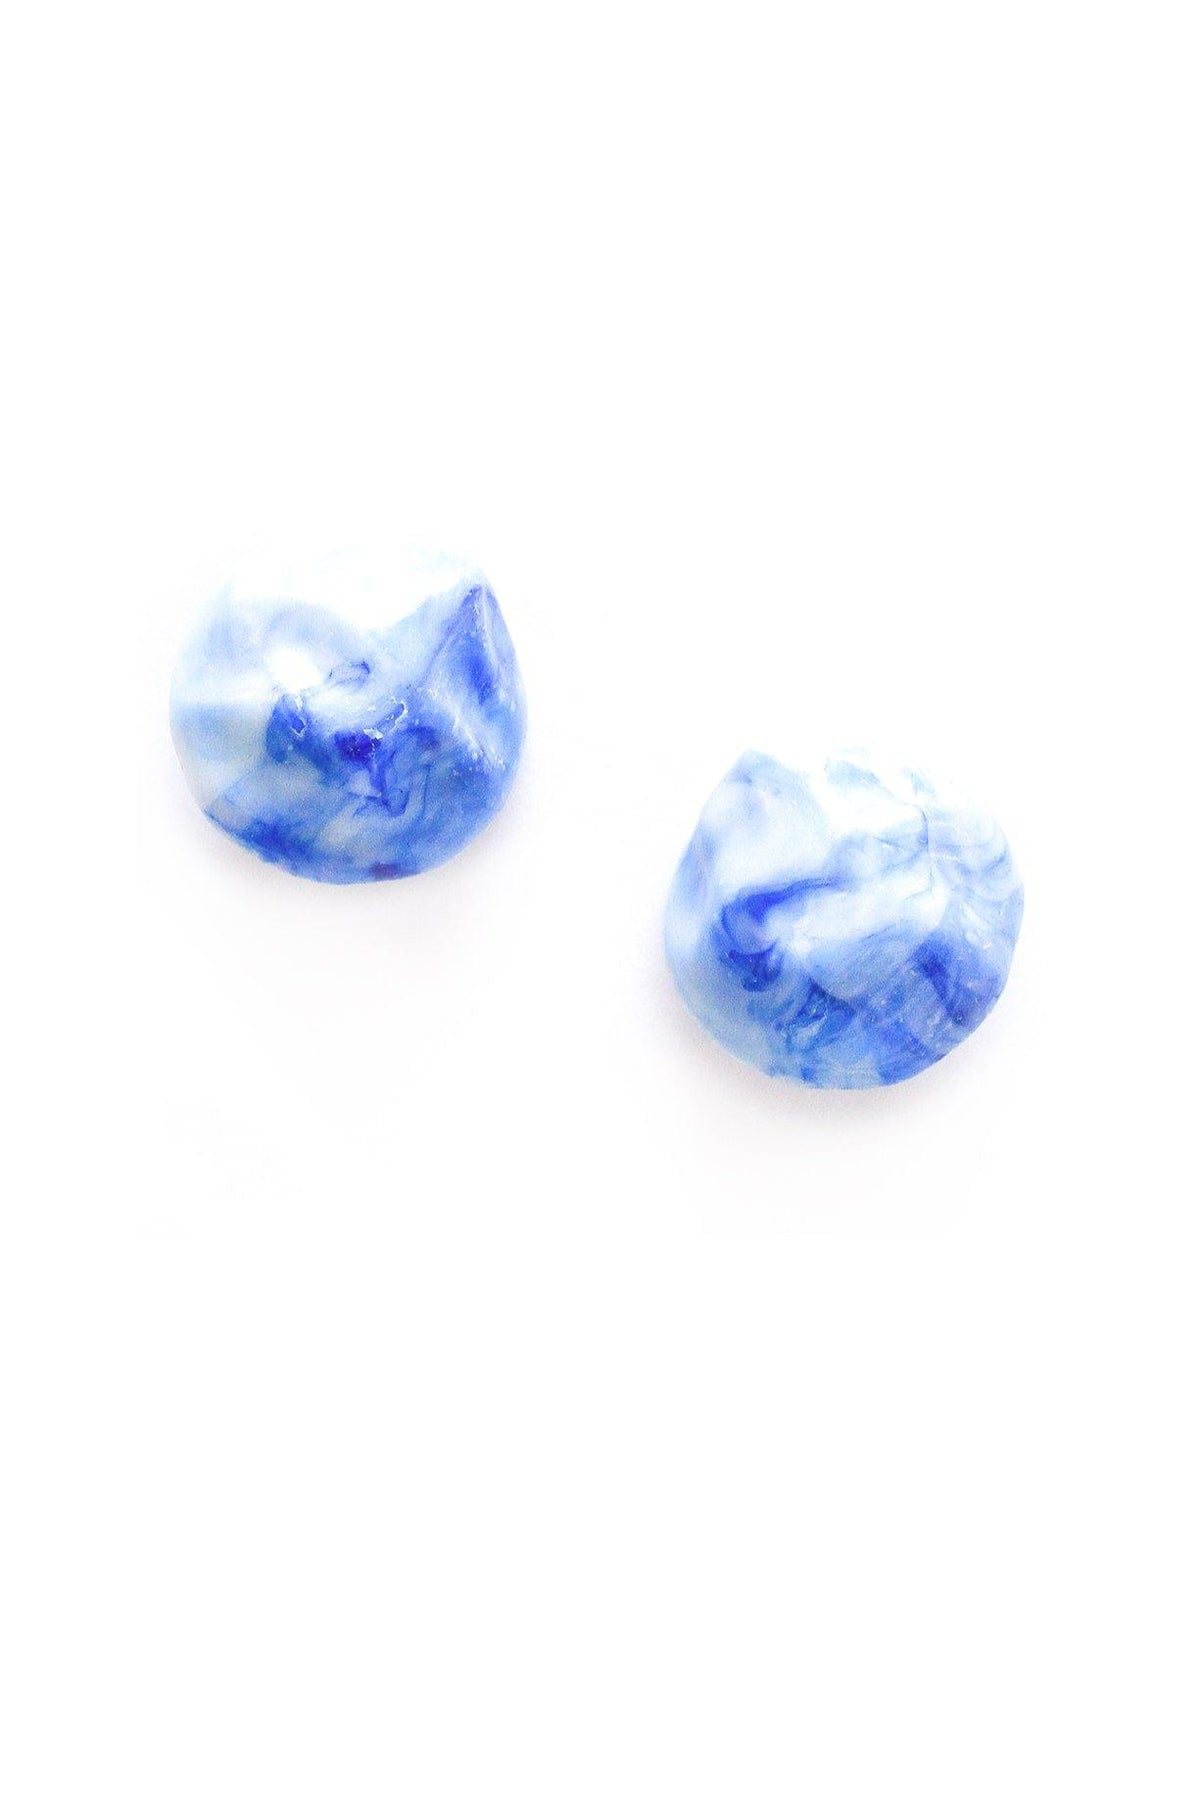 Vintage blue marbled statement earrings from Sweet & Spark.